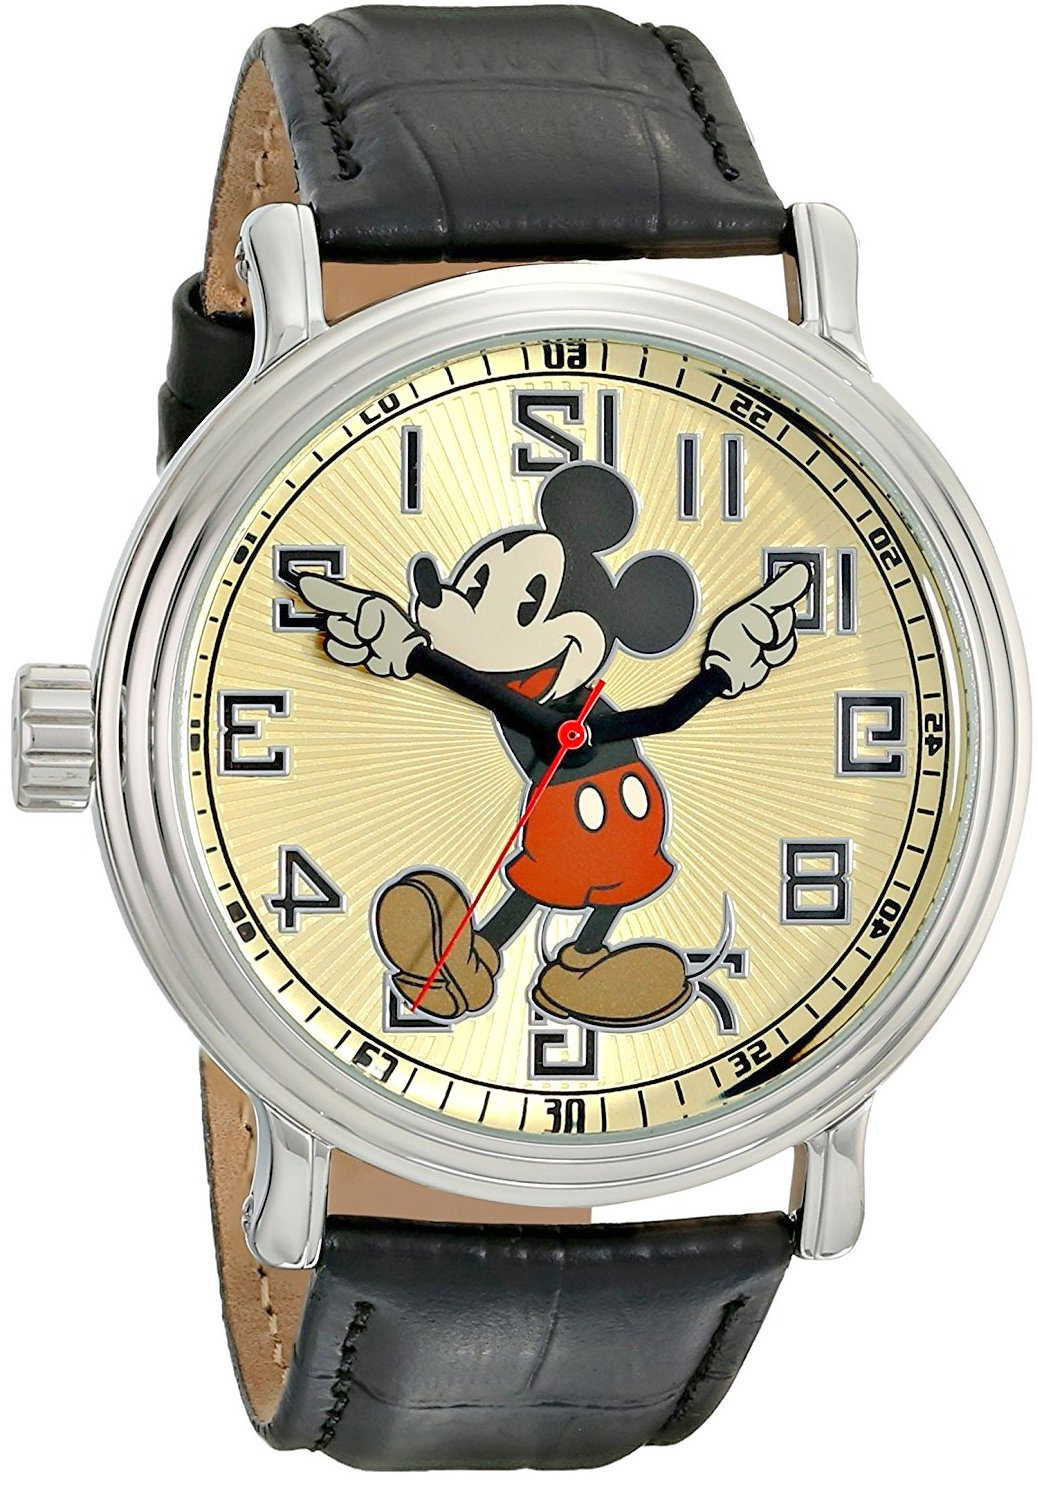 Online Mickey Mouse Watch Photo